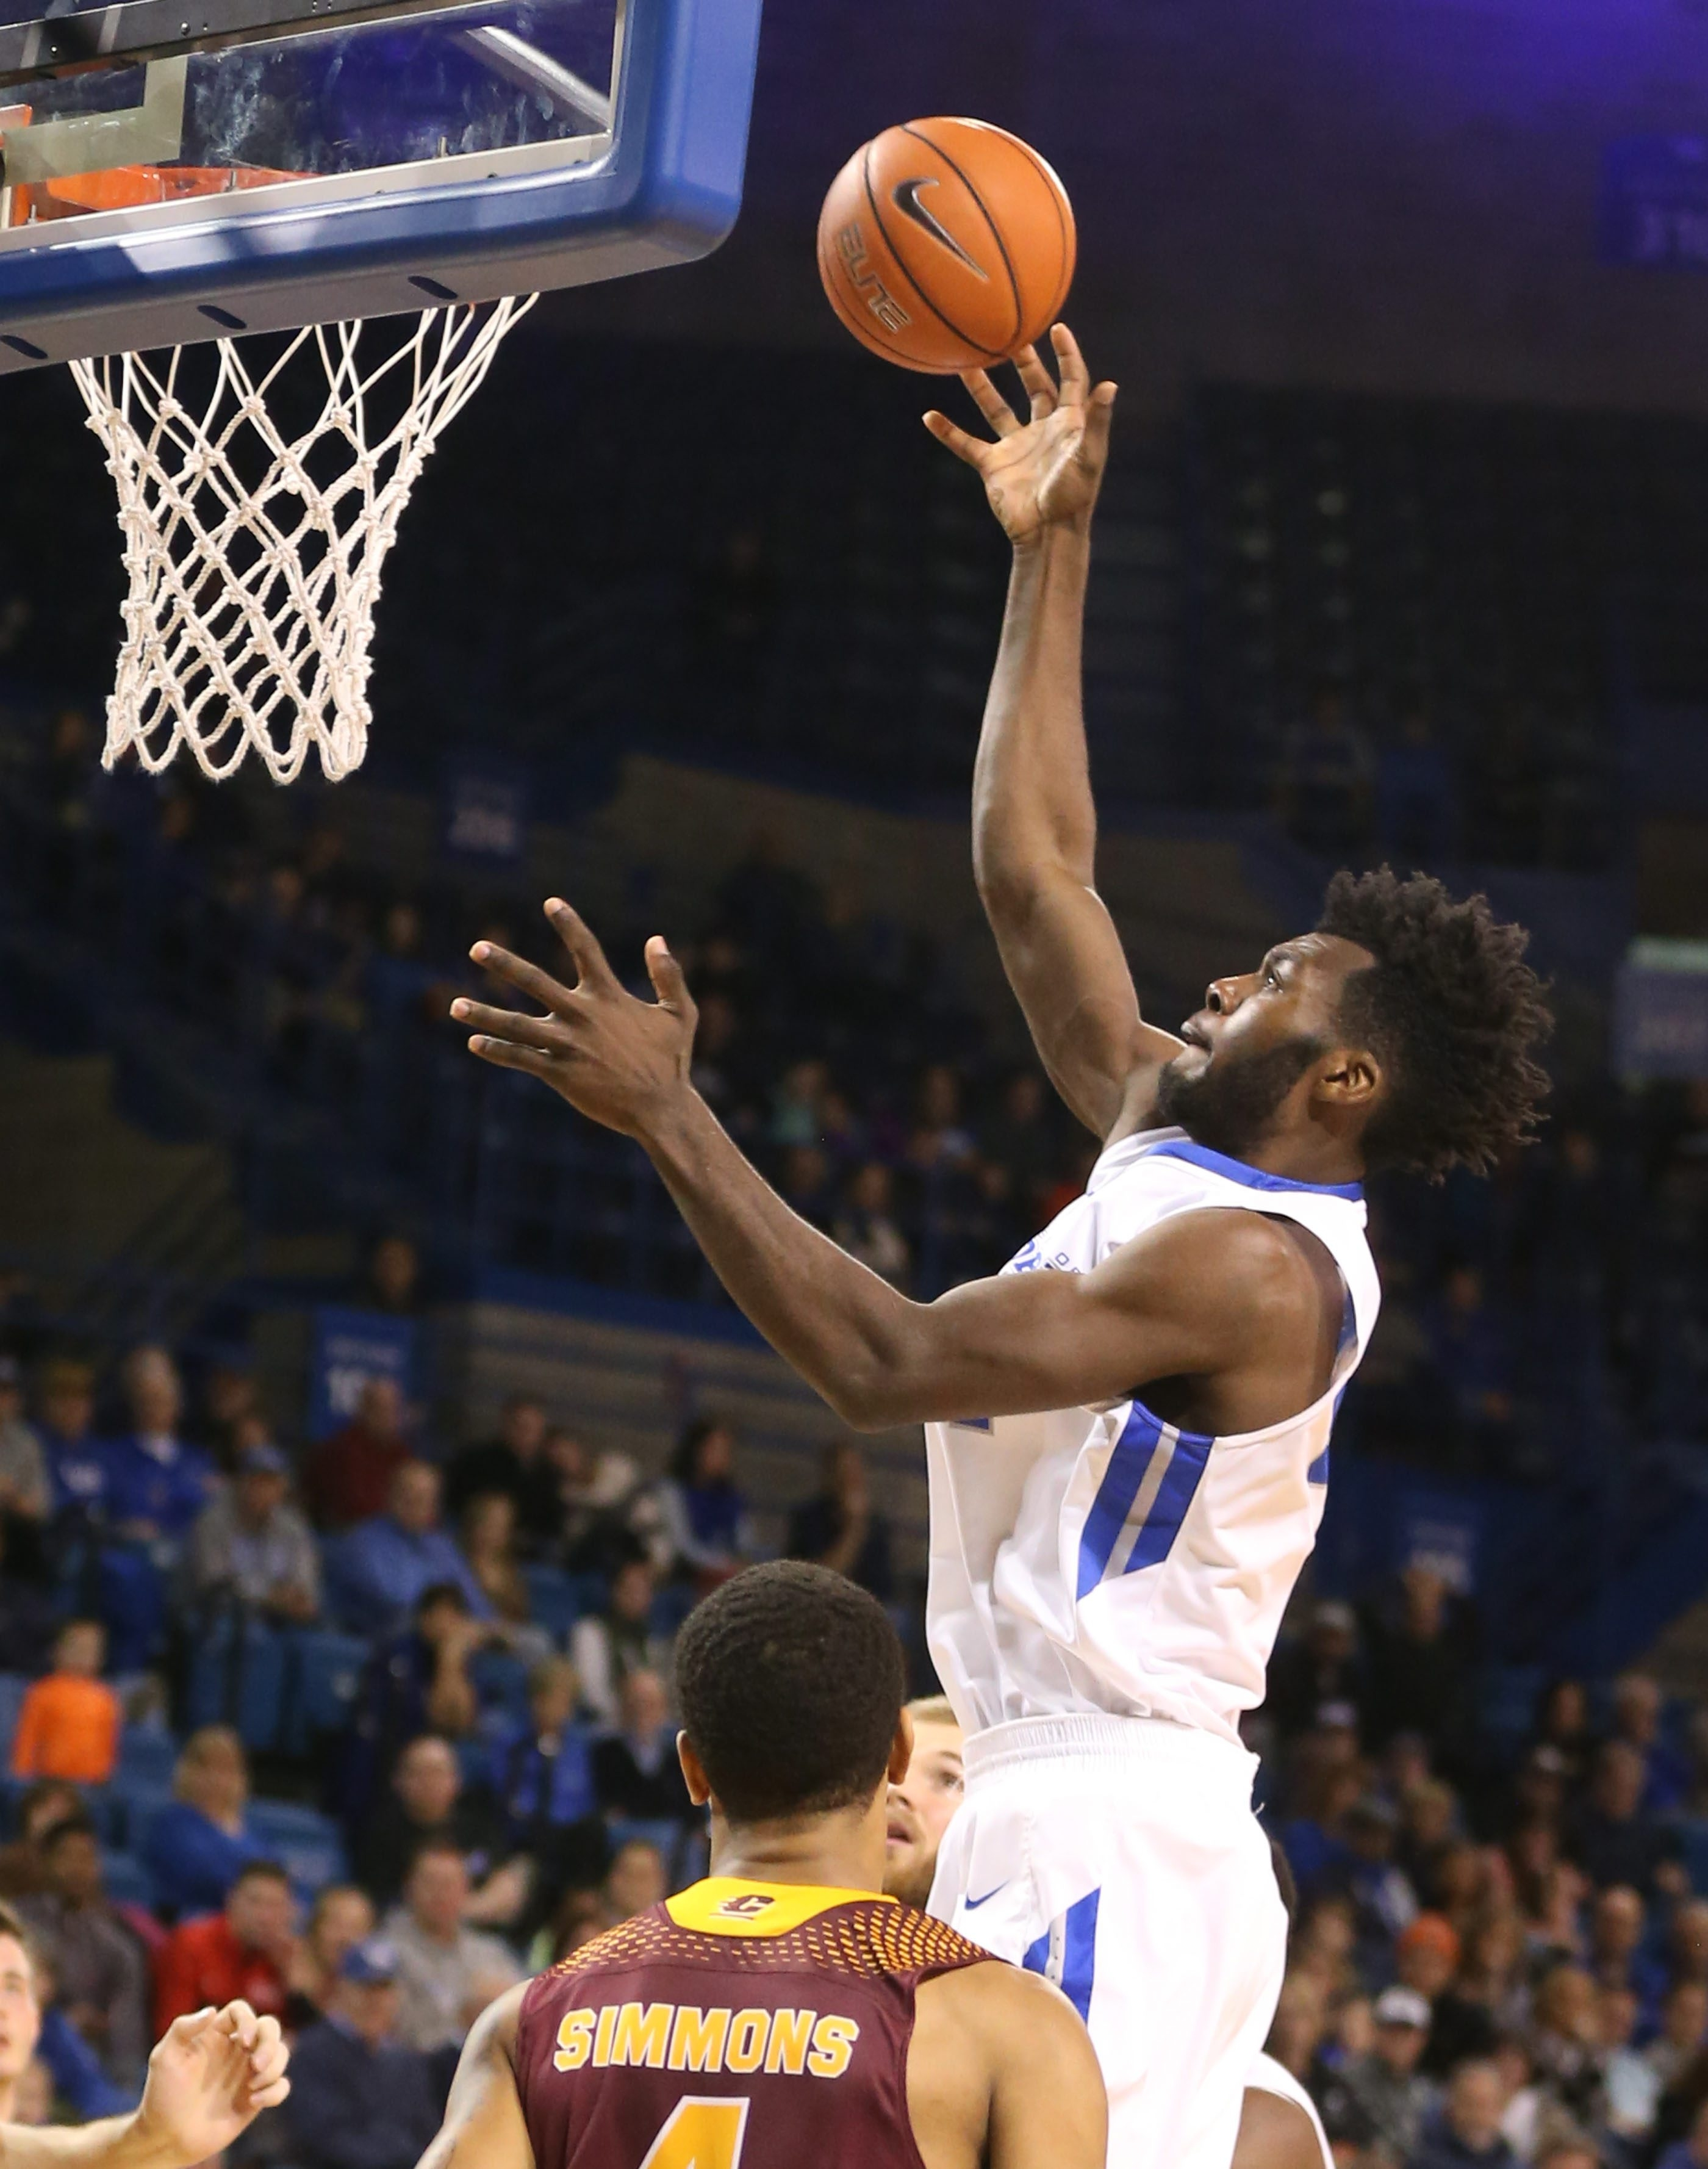 """At 6-foot-10, UB center Ikenna Smart has adapted quickly to the game and sees his role as """"playing hard every game, trying to get all the rebounds, stopping drives to the basket."""""""